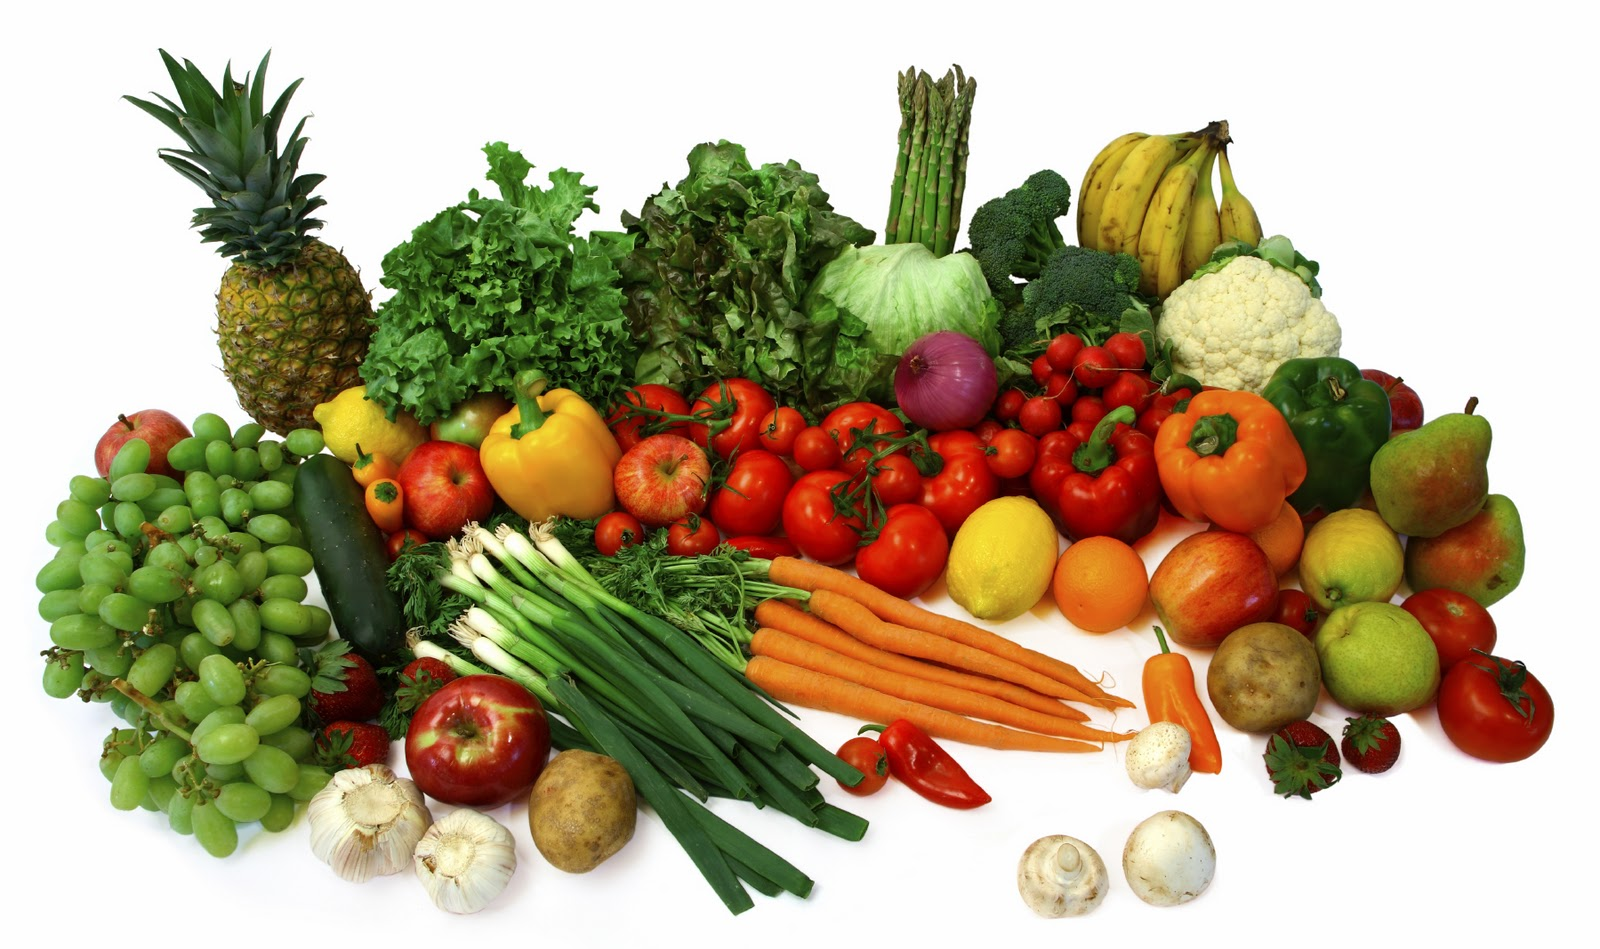 Consumption of fruits, vegetables can prevent cancer — Expert